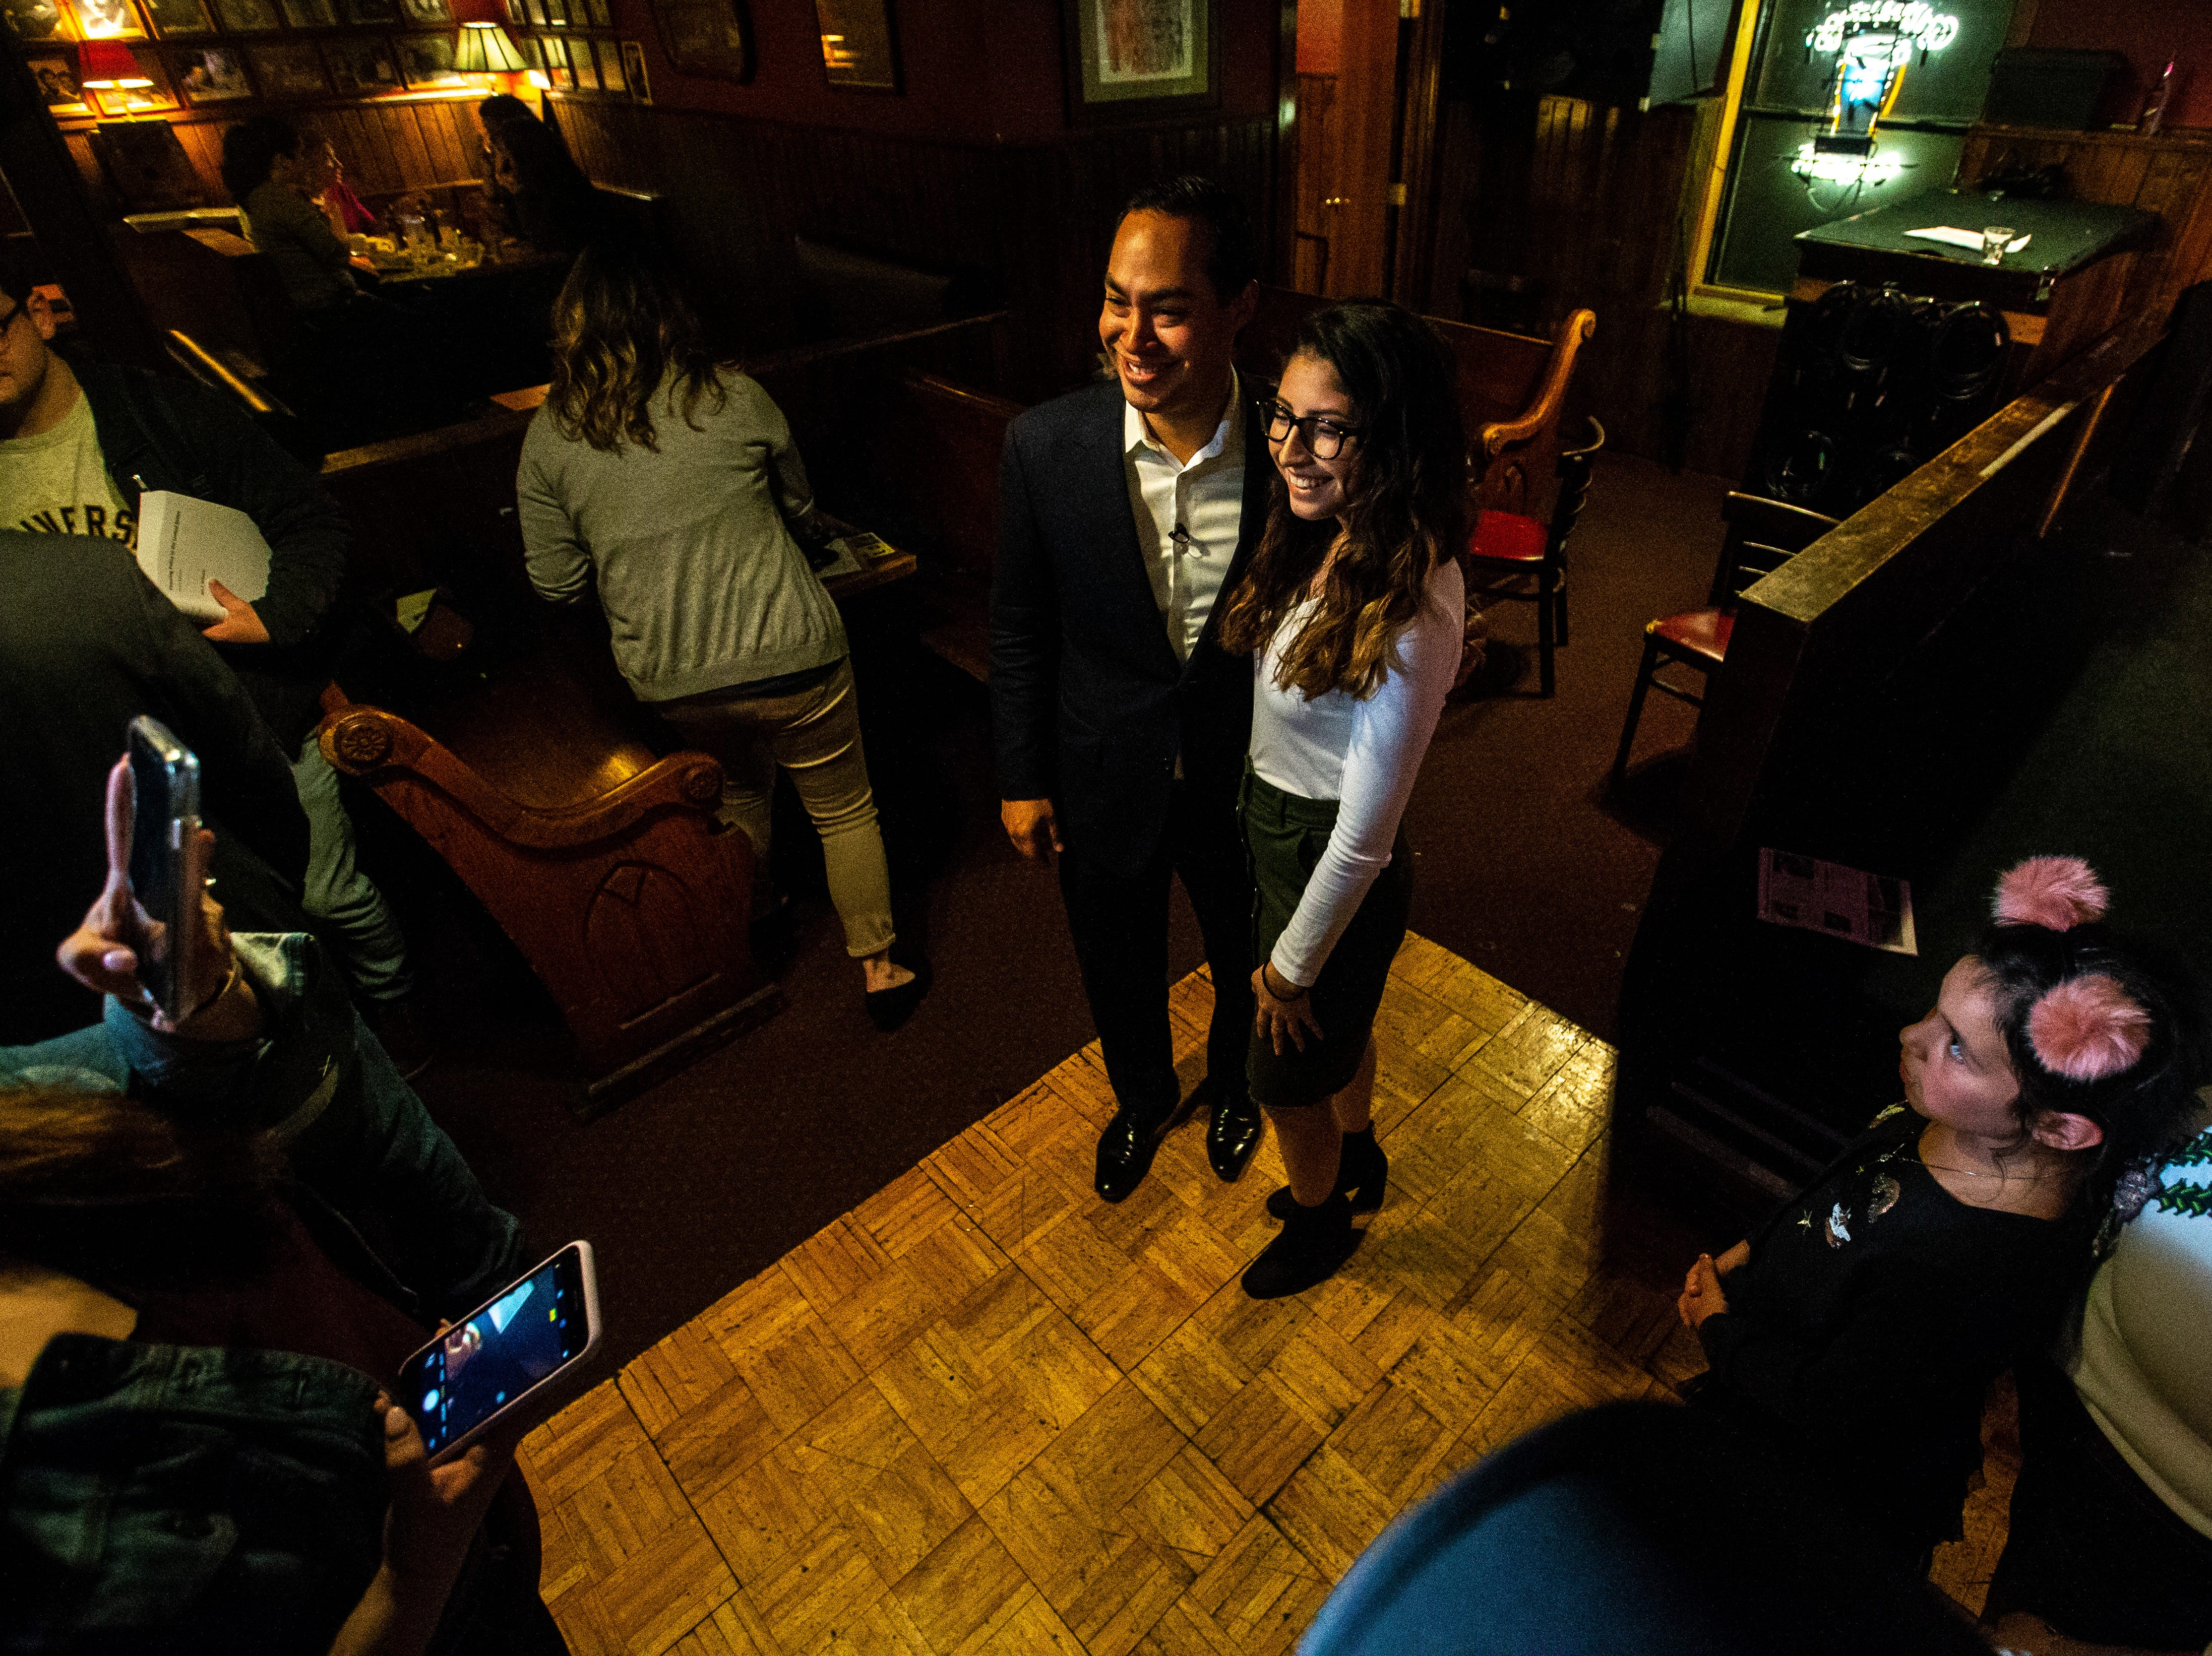 Democratic presidential candidate Julián Castro takes photos with supporters after a Lotería game night hosted by LULAC Council 308 on Sunday, March 31, 2019, at The Mill in downtown Iowa City, Iowa.